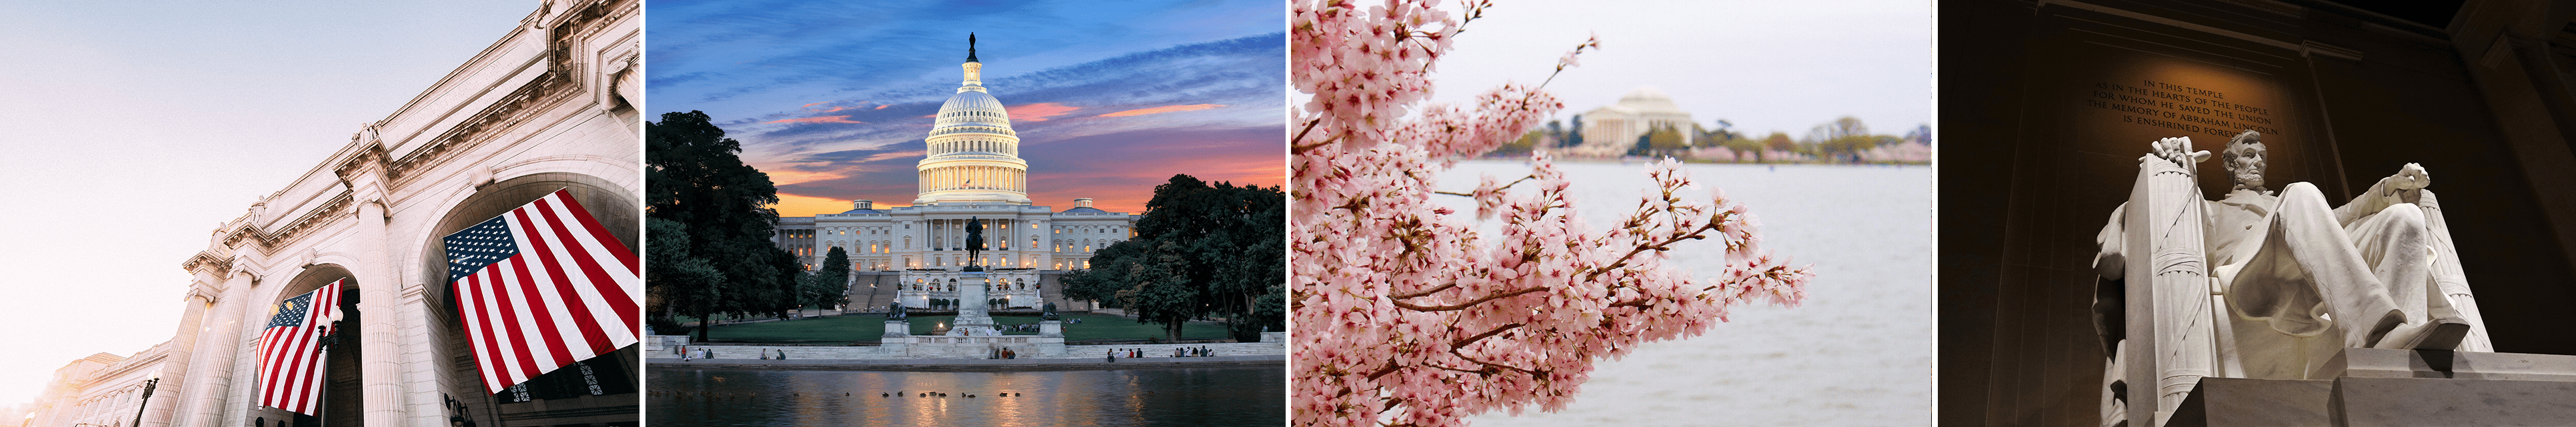 A collage of pictures including the Capitol building at sunset, a close up of the statue in the Lincoln Memorial, a picture of the cherry blossoms, and another close up of the American Flag hanging from an older building